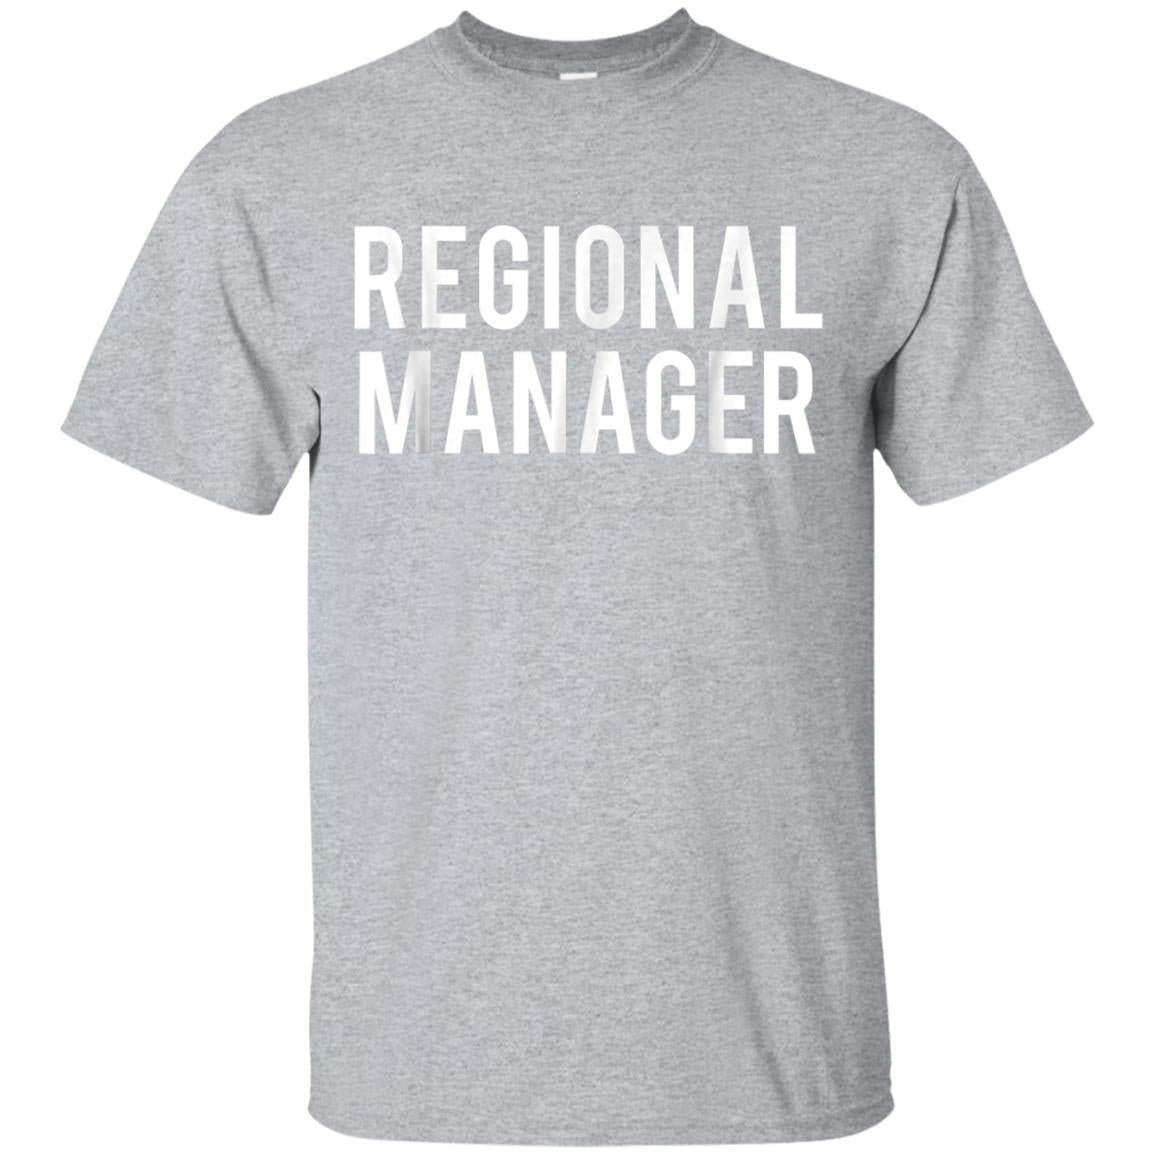 Regional Manager Shirt for Office Supervisors & Organizers